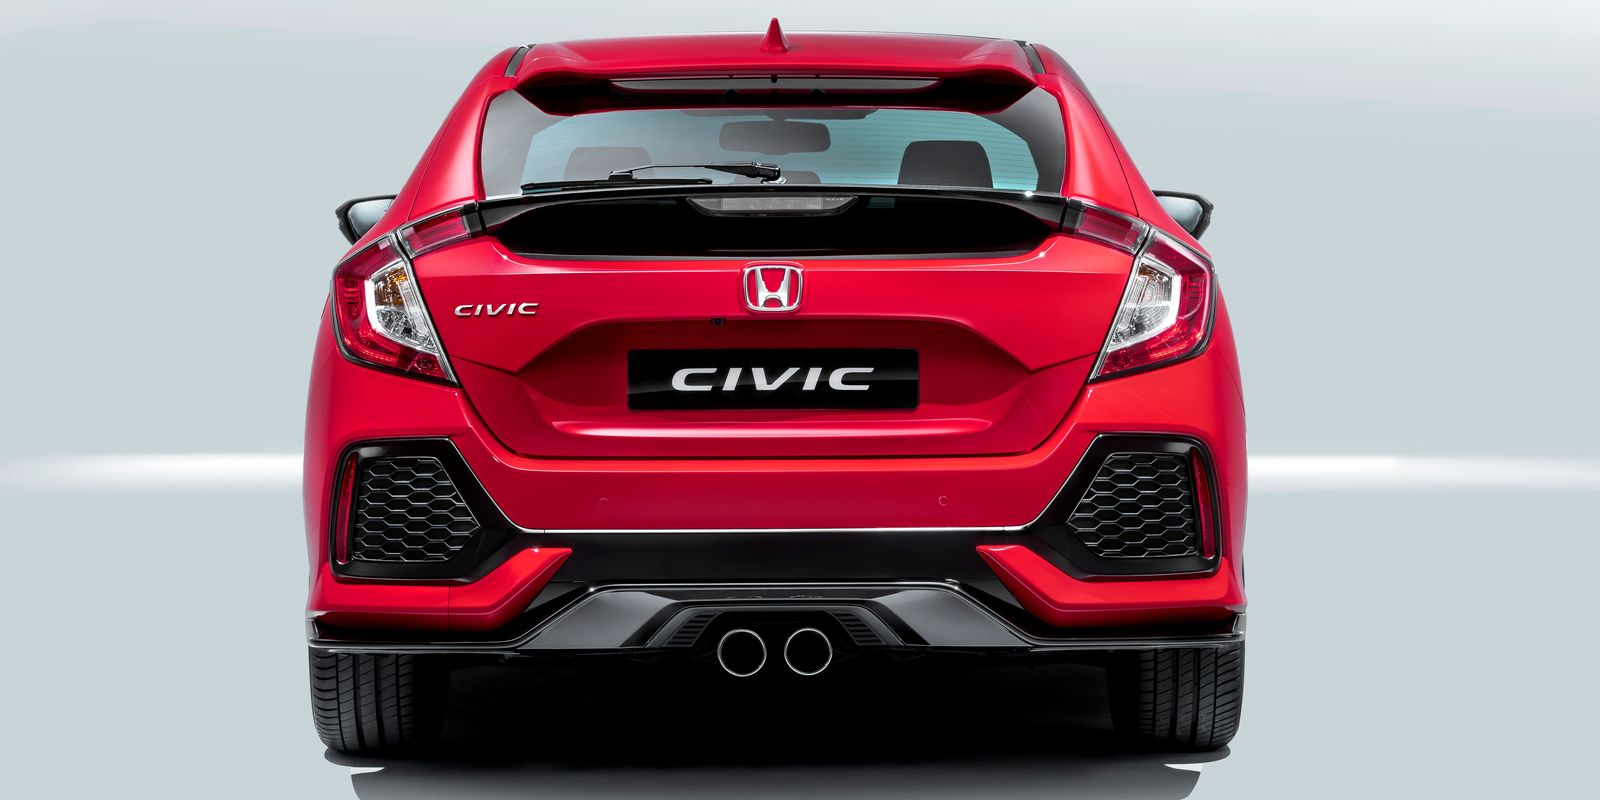 New Civic 2017 Honda Civic Review Carwow